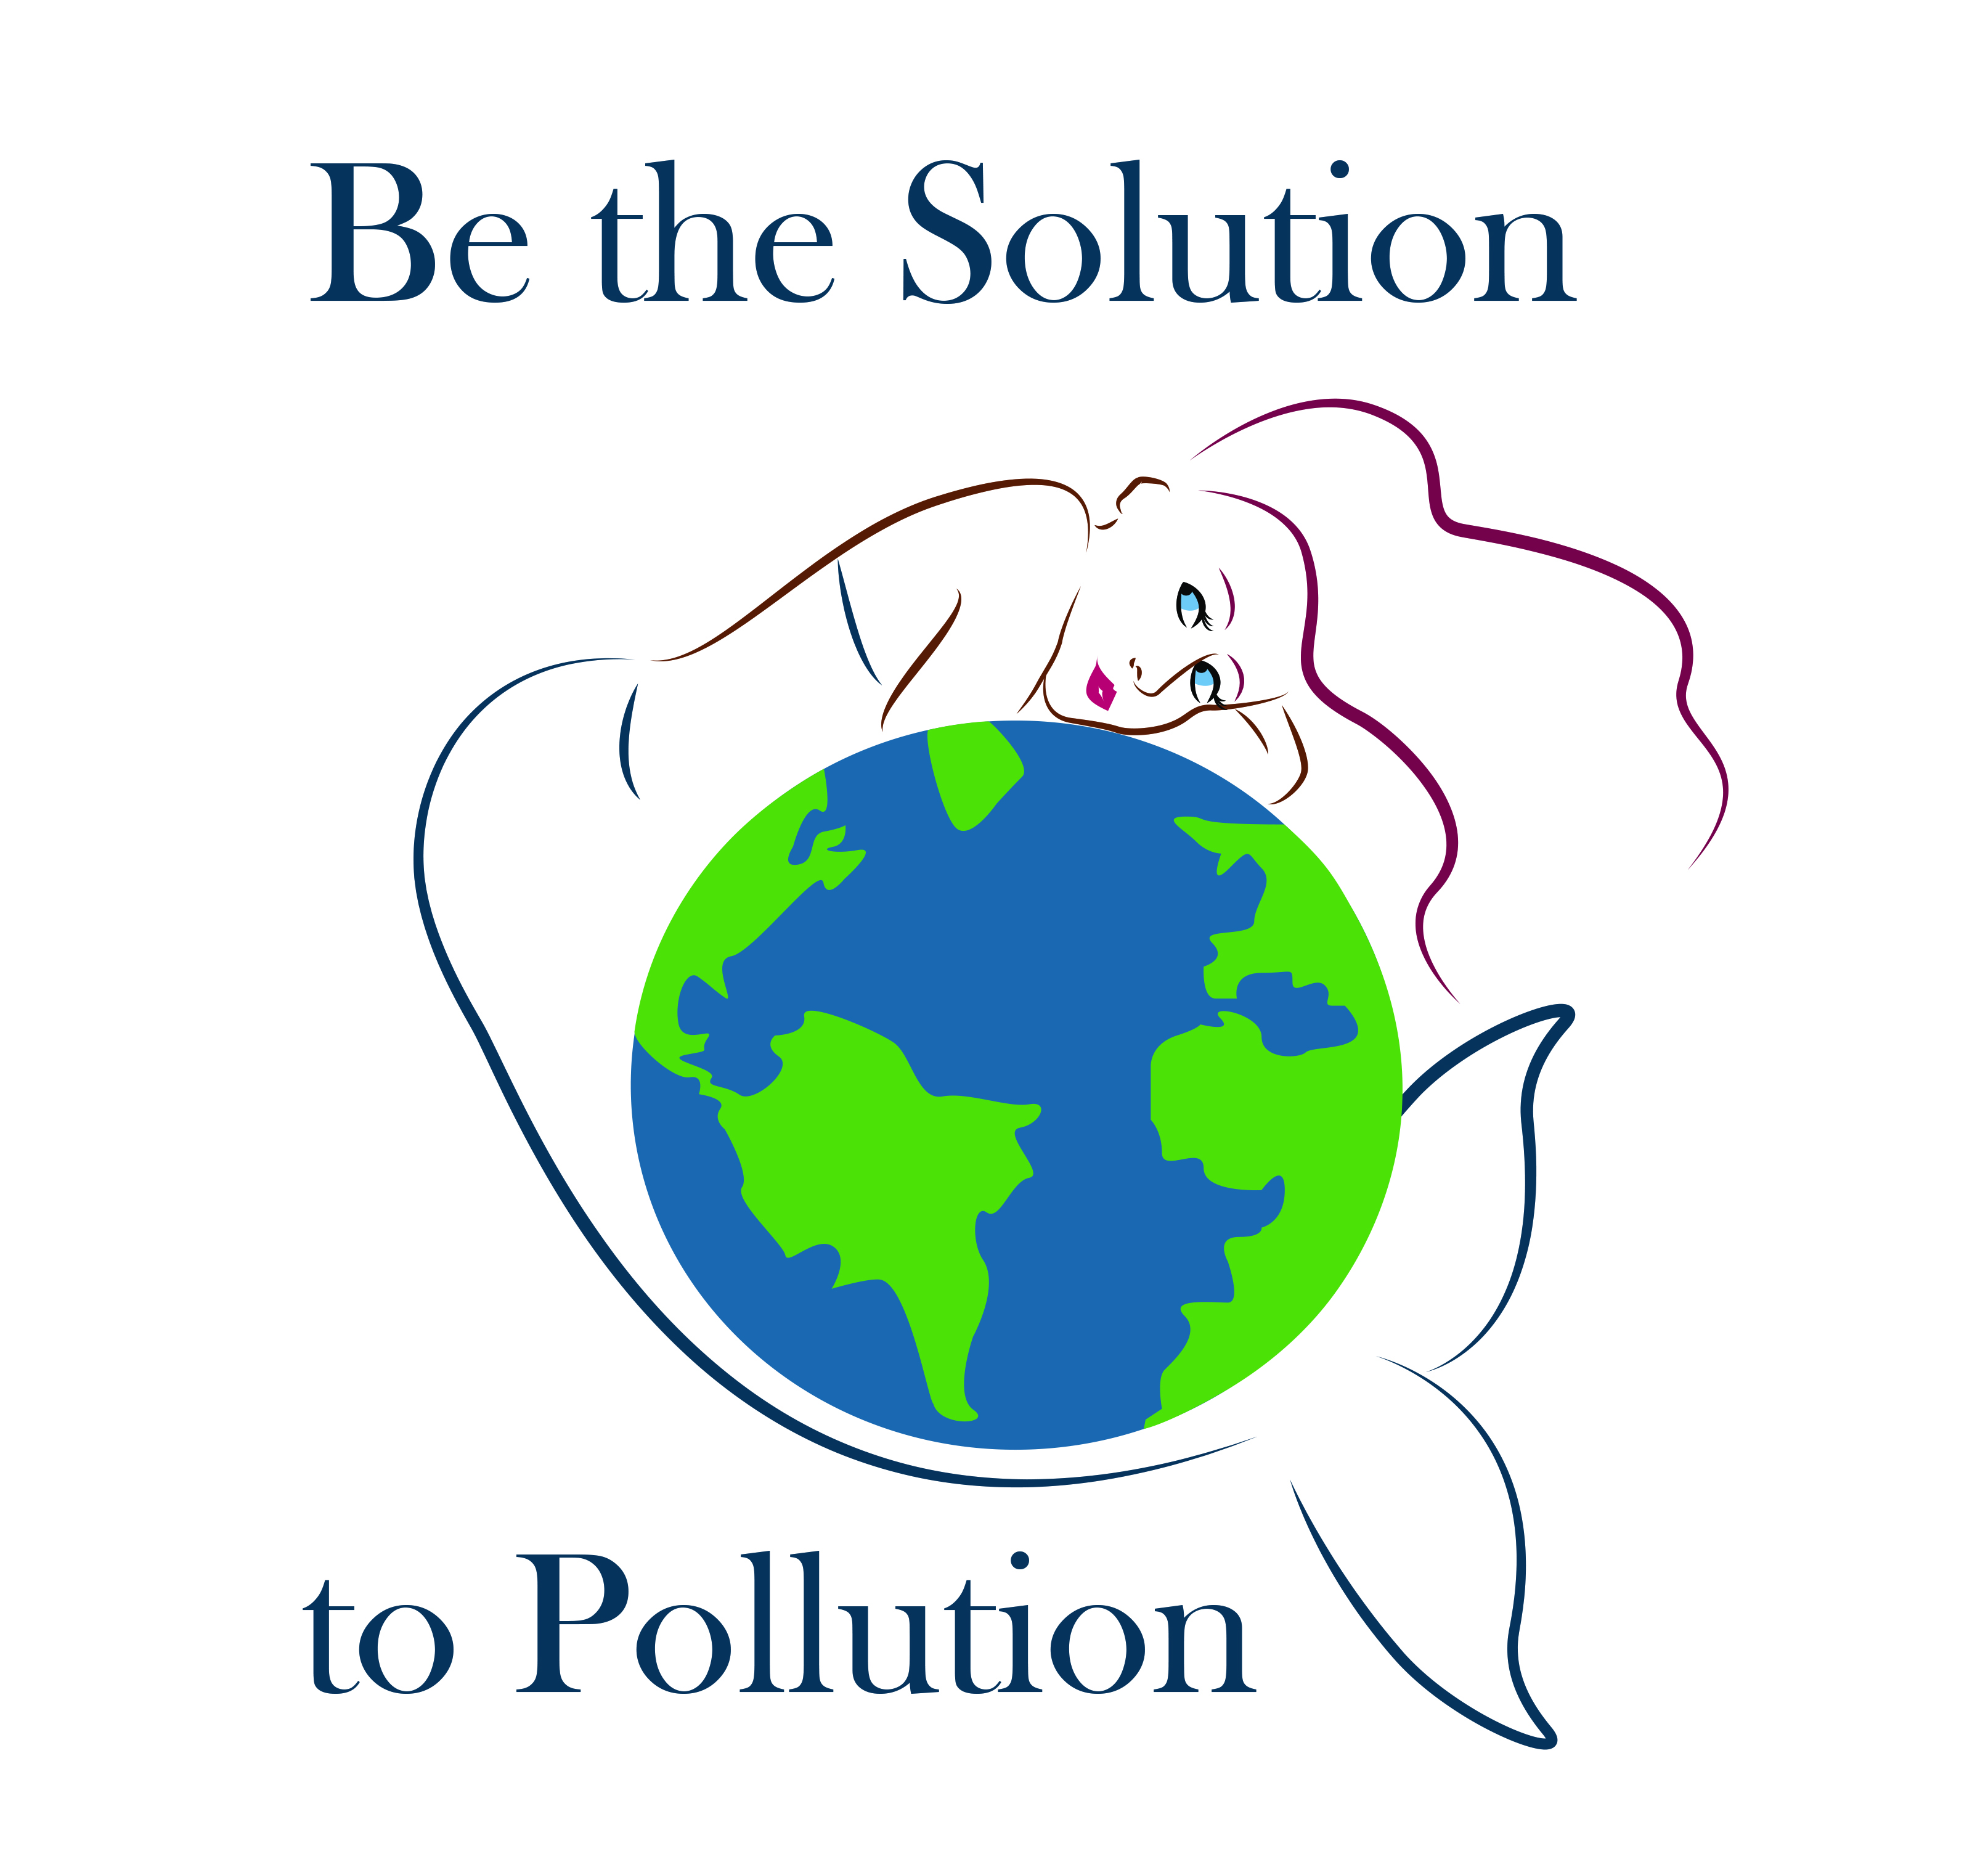 Be the Solution to Pollution